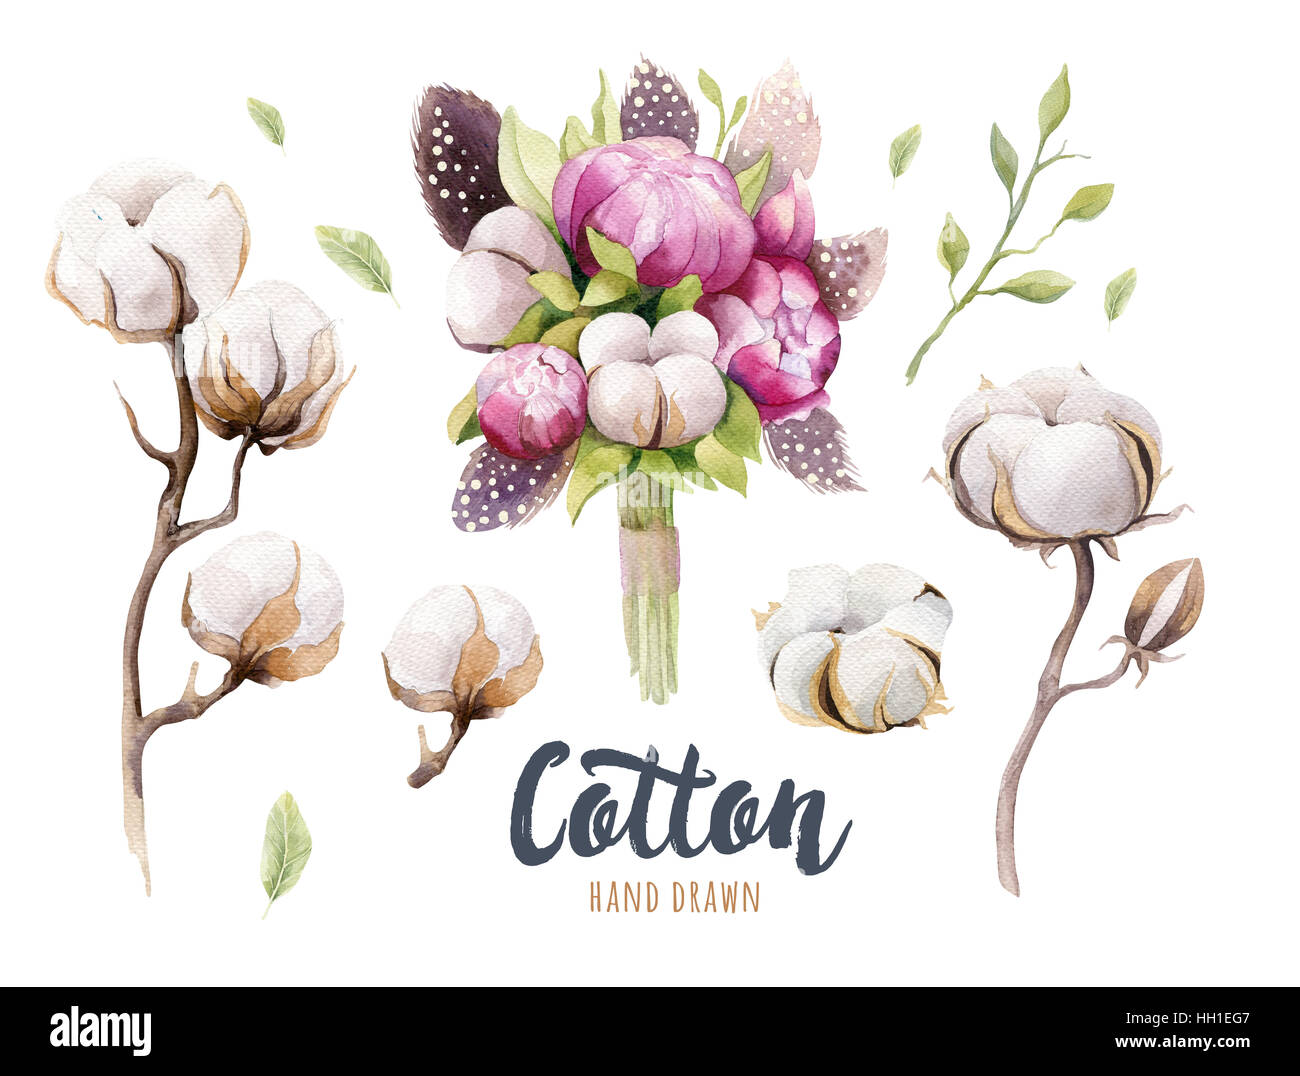 Set of hand drawn watercolour Cotton boll, peonies and feathers. Stock Photo